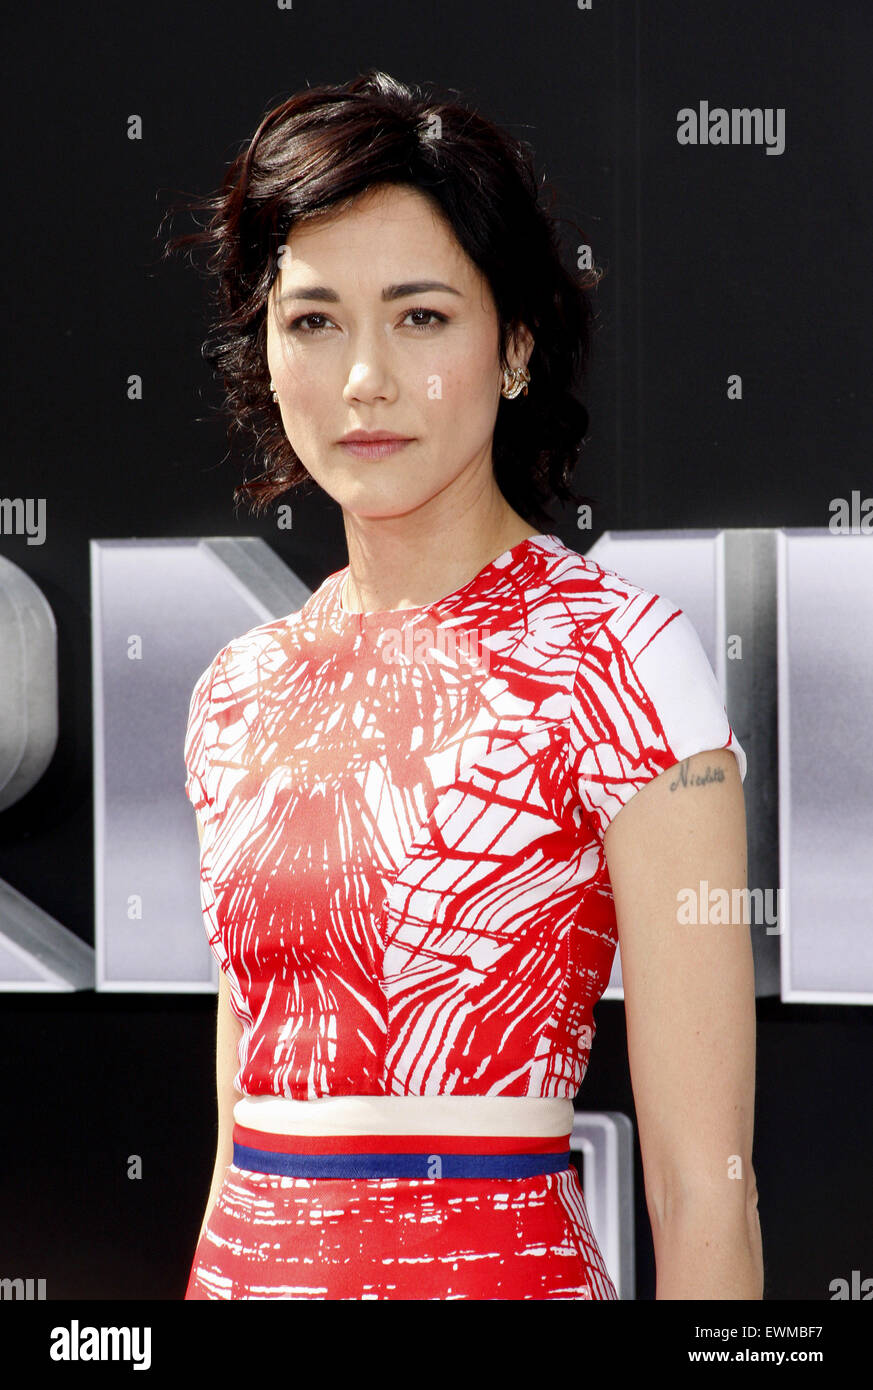 Paparazzi Sandrine Holt nudes (32 photo), Pussy, Hot, Twitter, swimsuit 2020